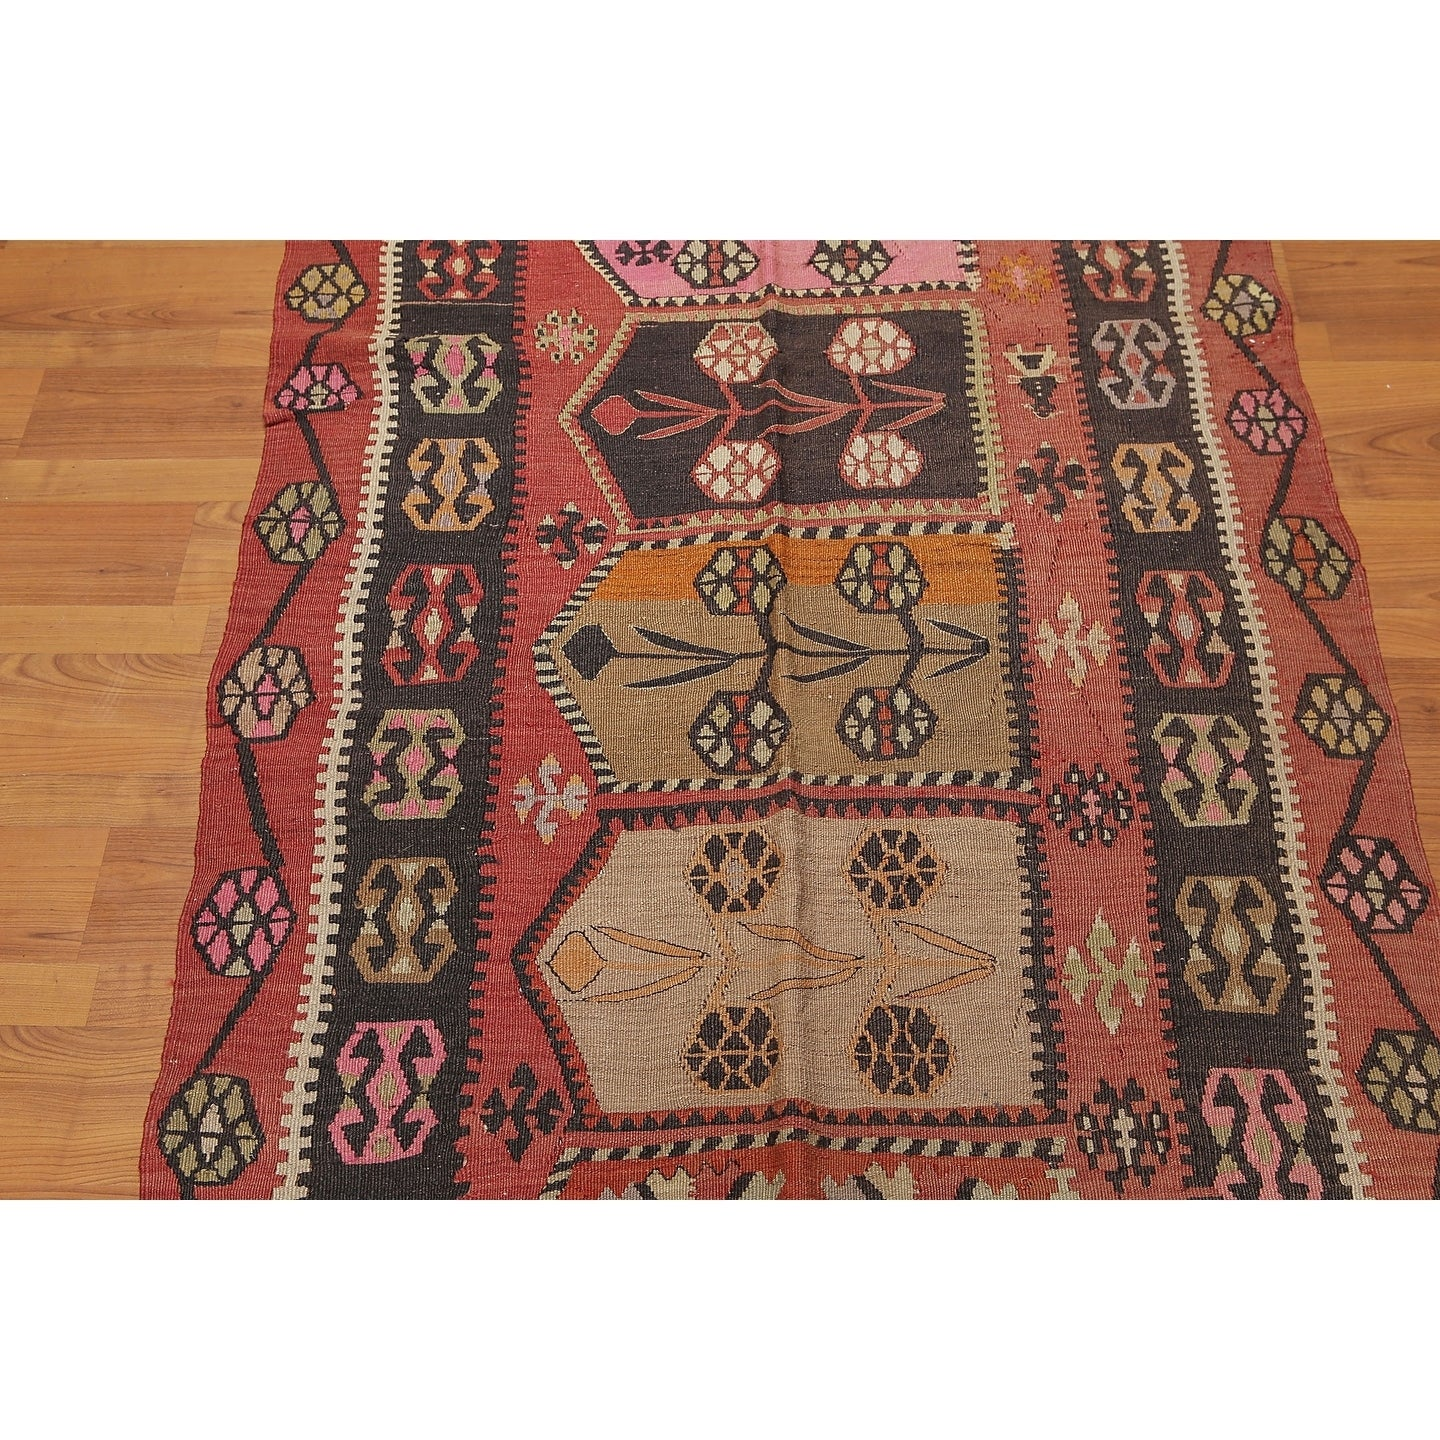 Vintage Turkish Kilim Hand Woven Runner Rug Charcoal Rust 3 8 X 13 3 3 8 X 13 3 On Sale Overstock 20490796